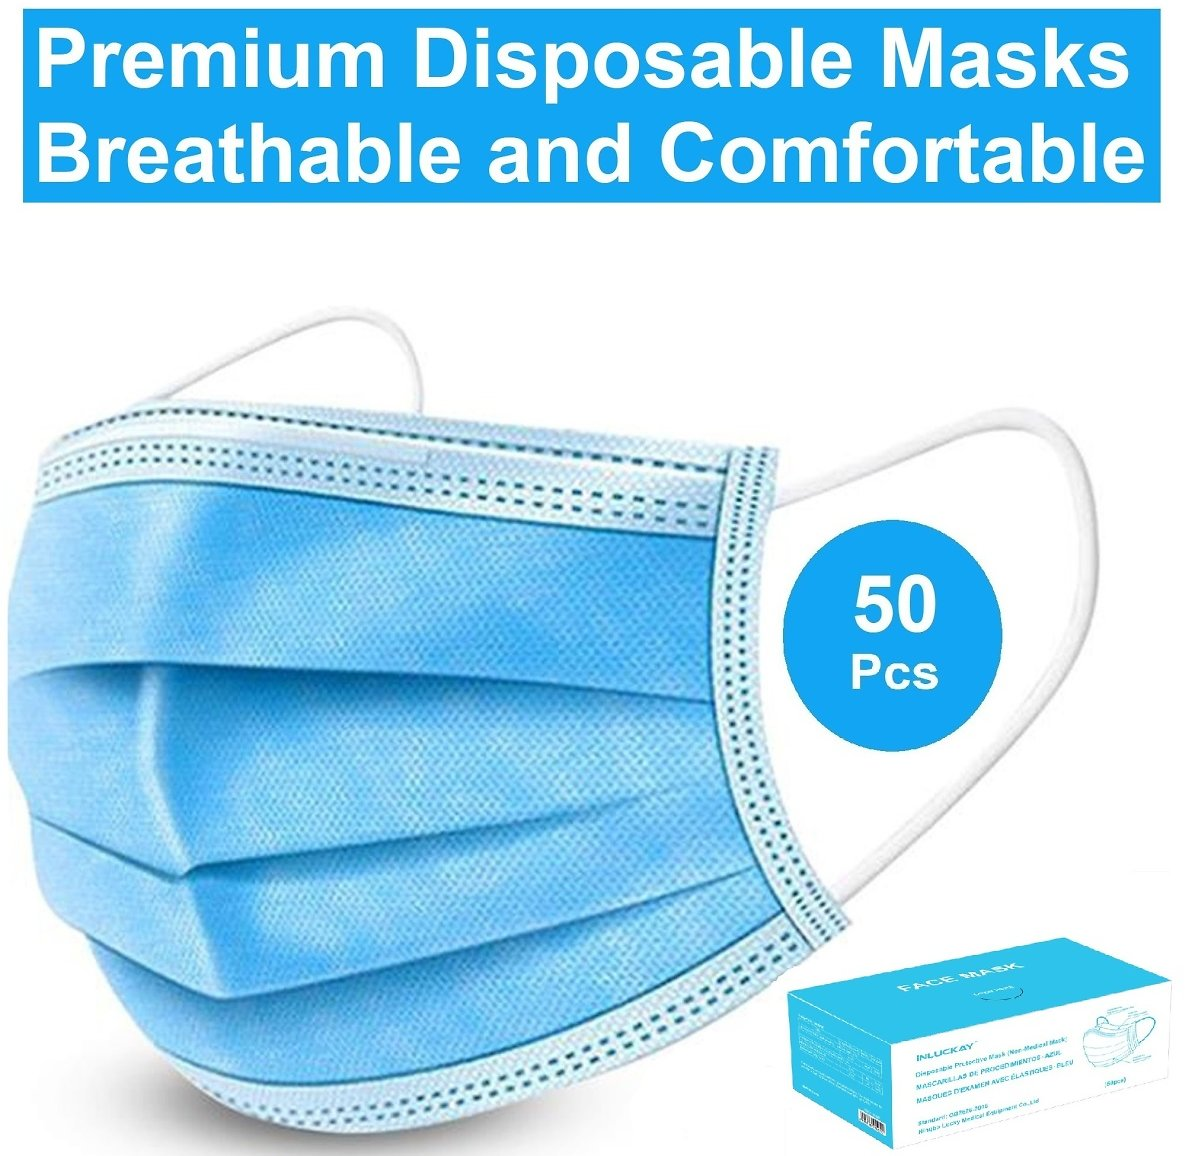 Disposable Face Mask - 10 Pack - Disposable Face Masks, 3-ply Elastic Ear Loop Filter Mask